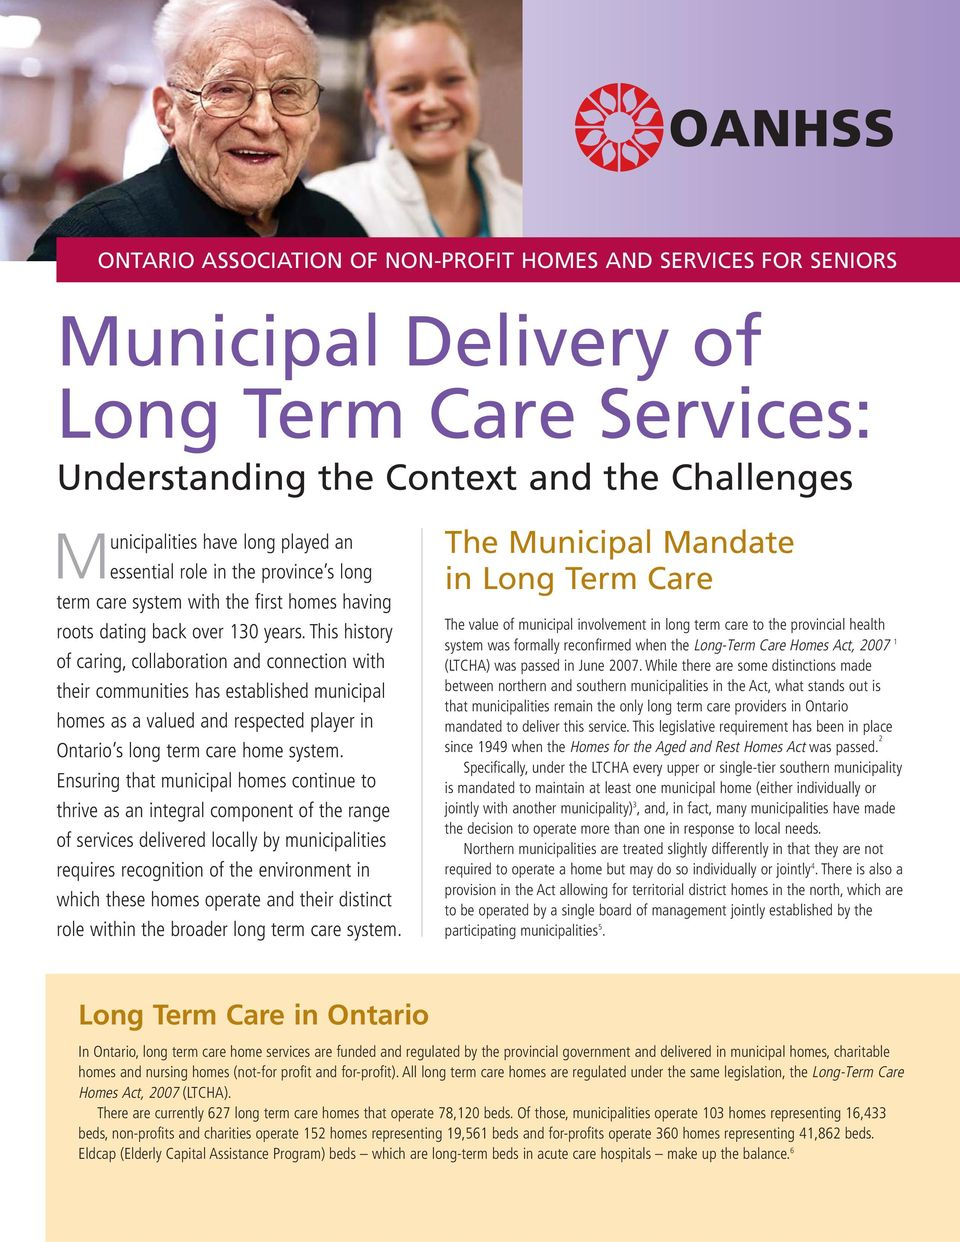 This history of caring, collaboration and connection with their communities has established municipal homes as a valued and respected player in Ontario s long term care home system.